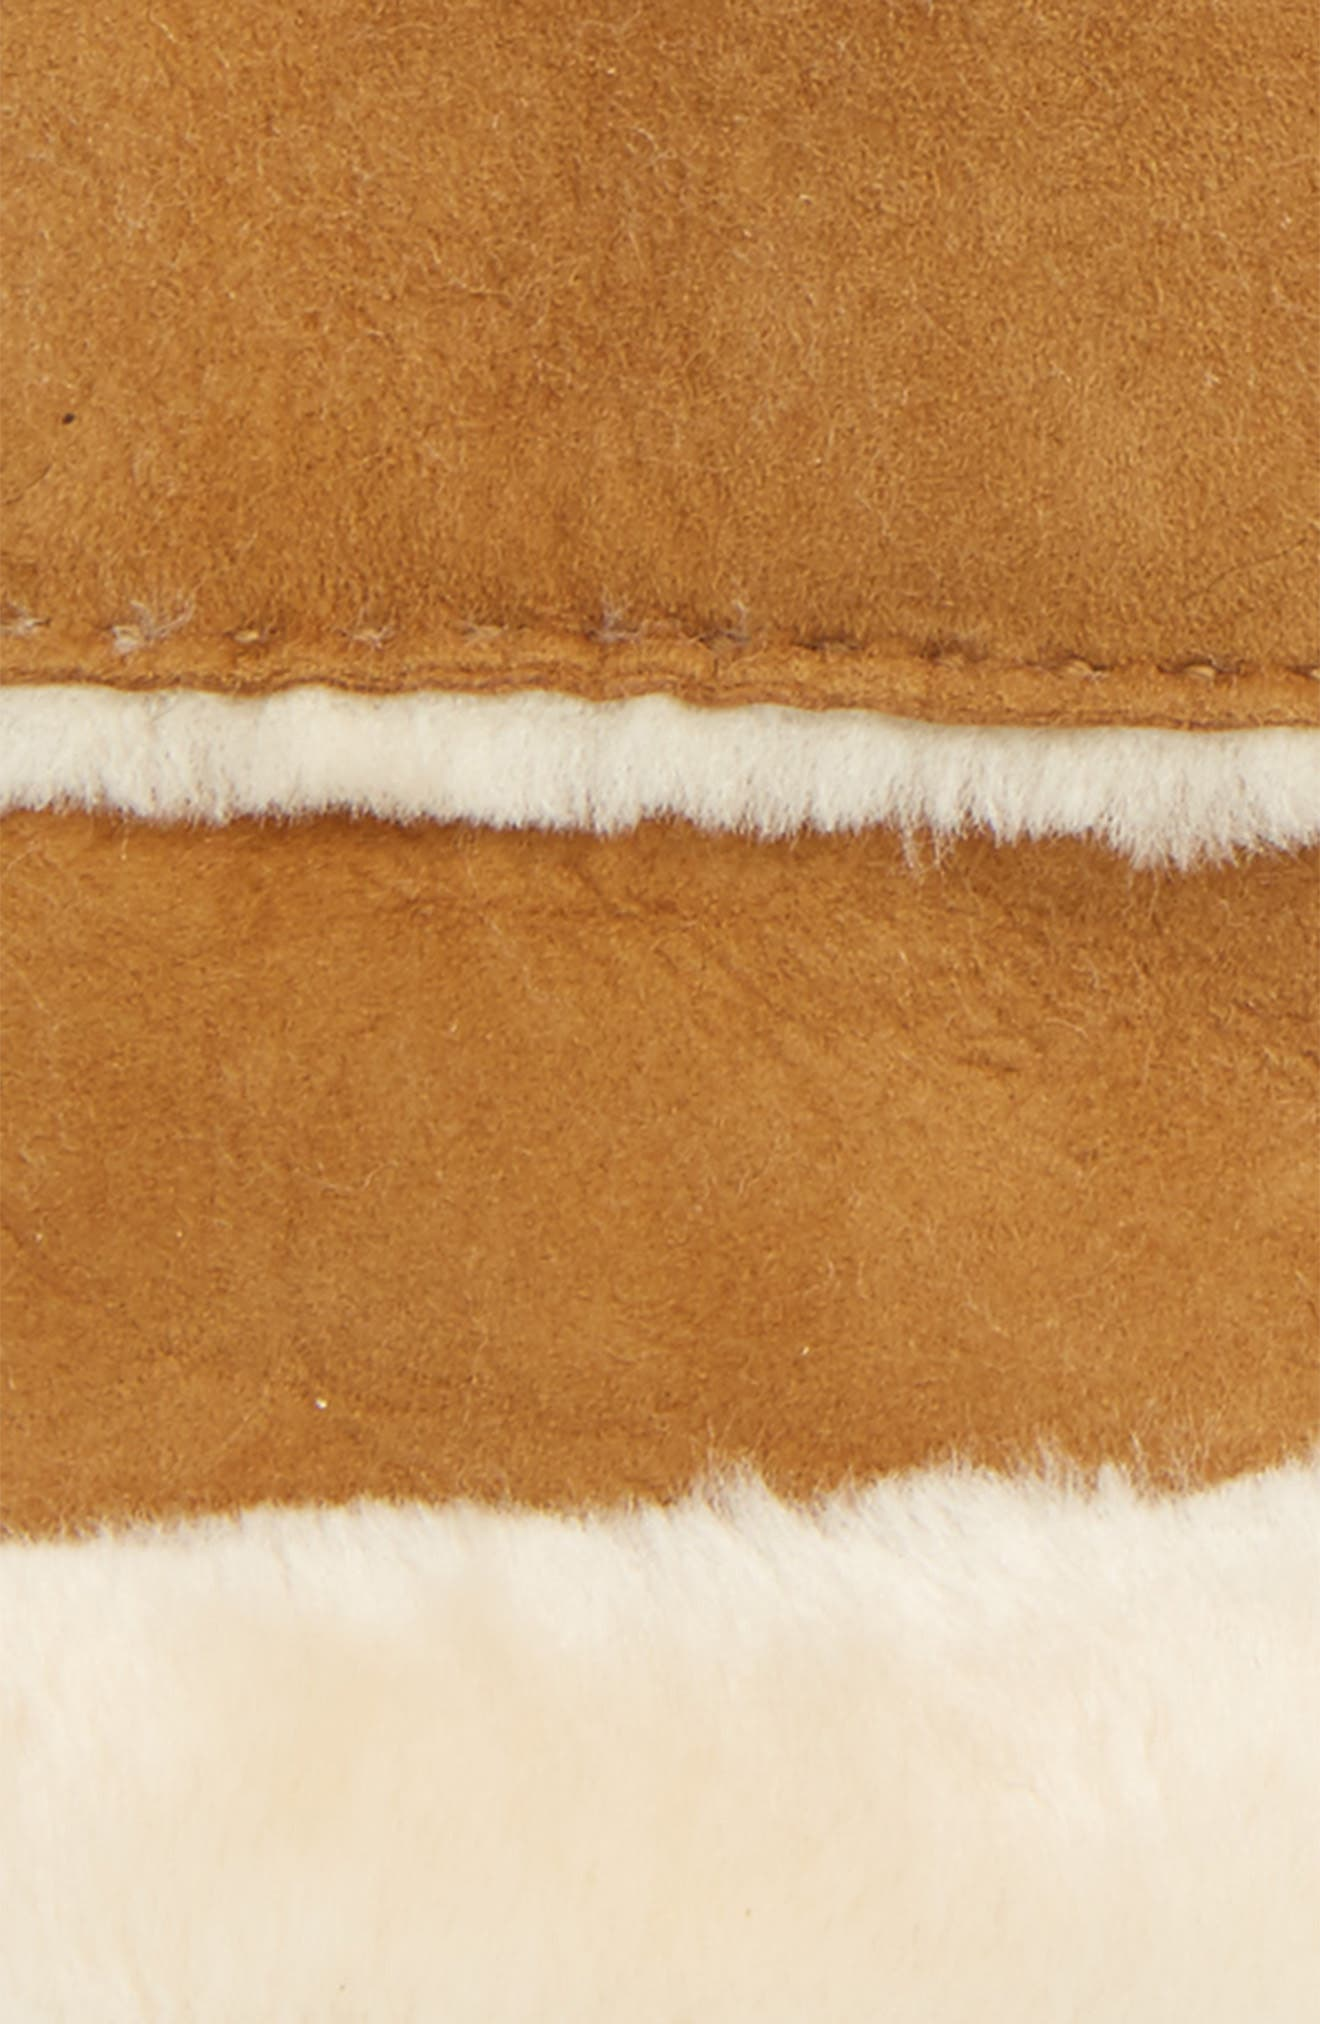 UGG<sup>®</sup> Slim Genuine Shearling Tech Gloves,                             Alternate thumbnail 3, color,                             Chestnut